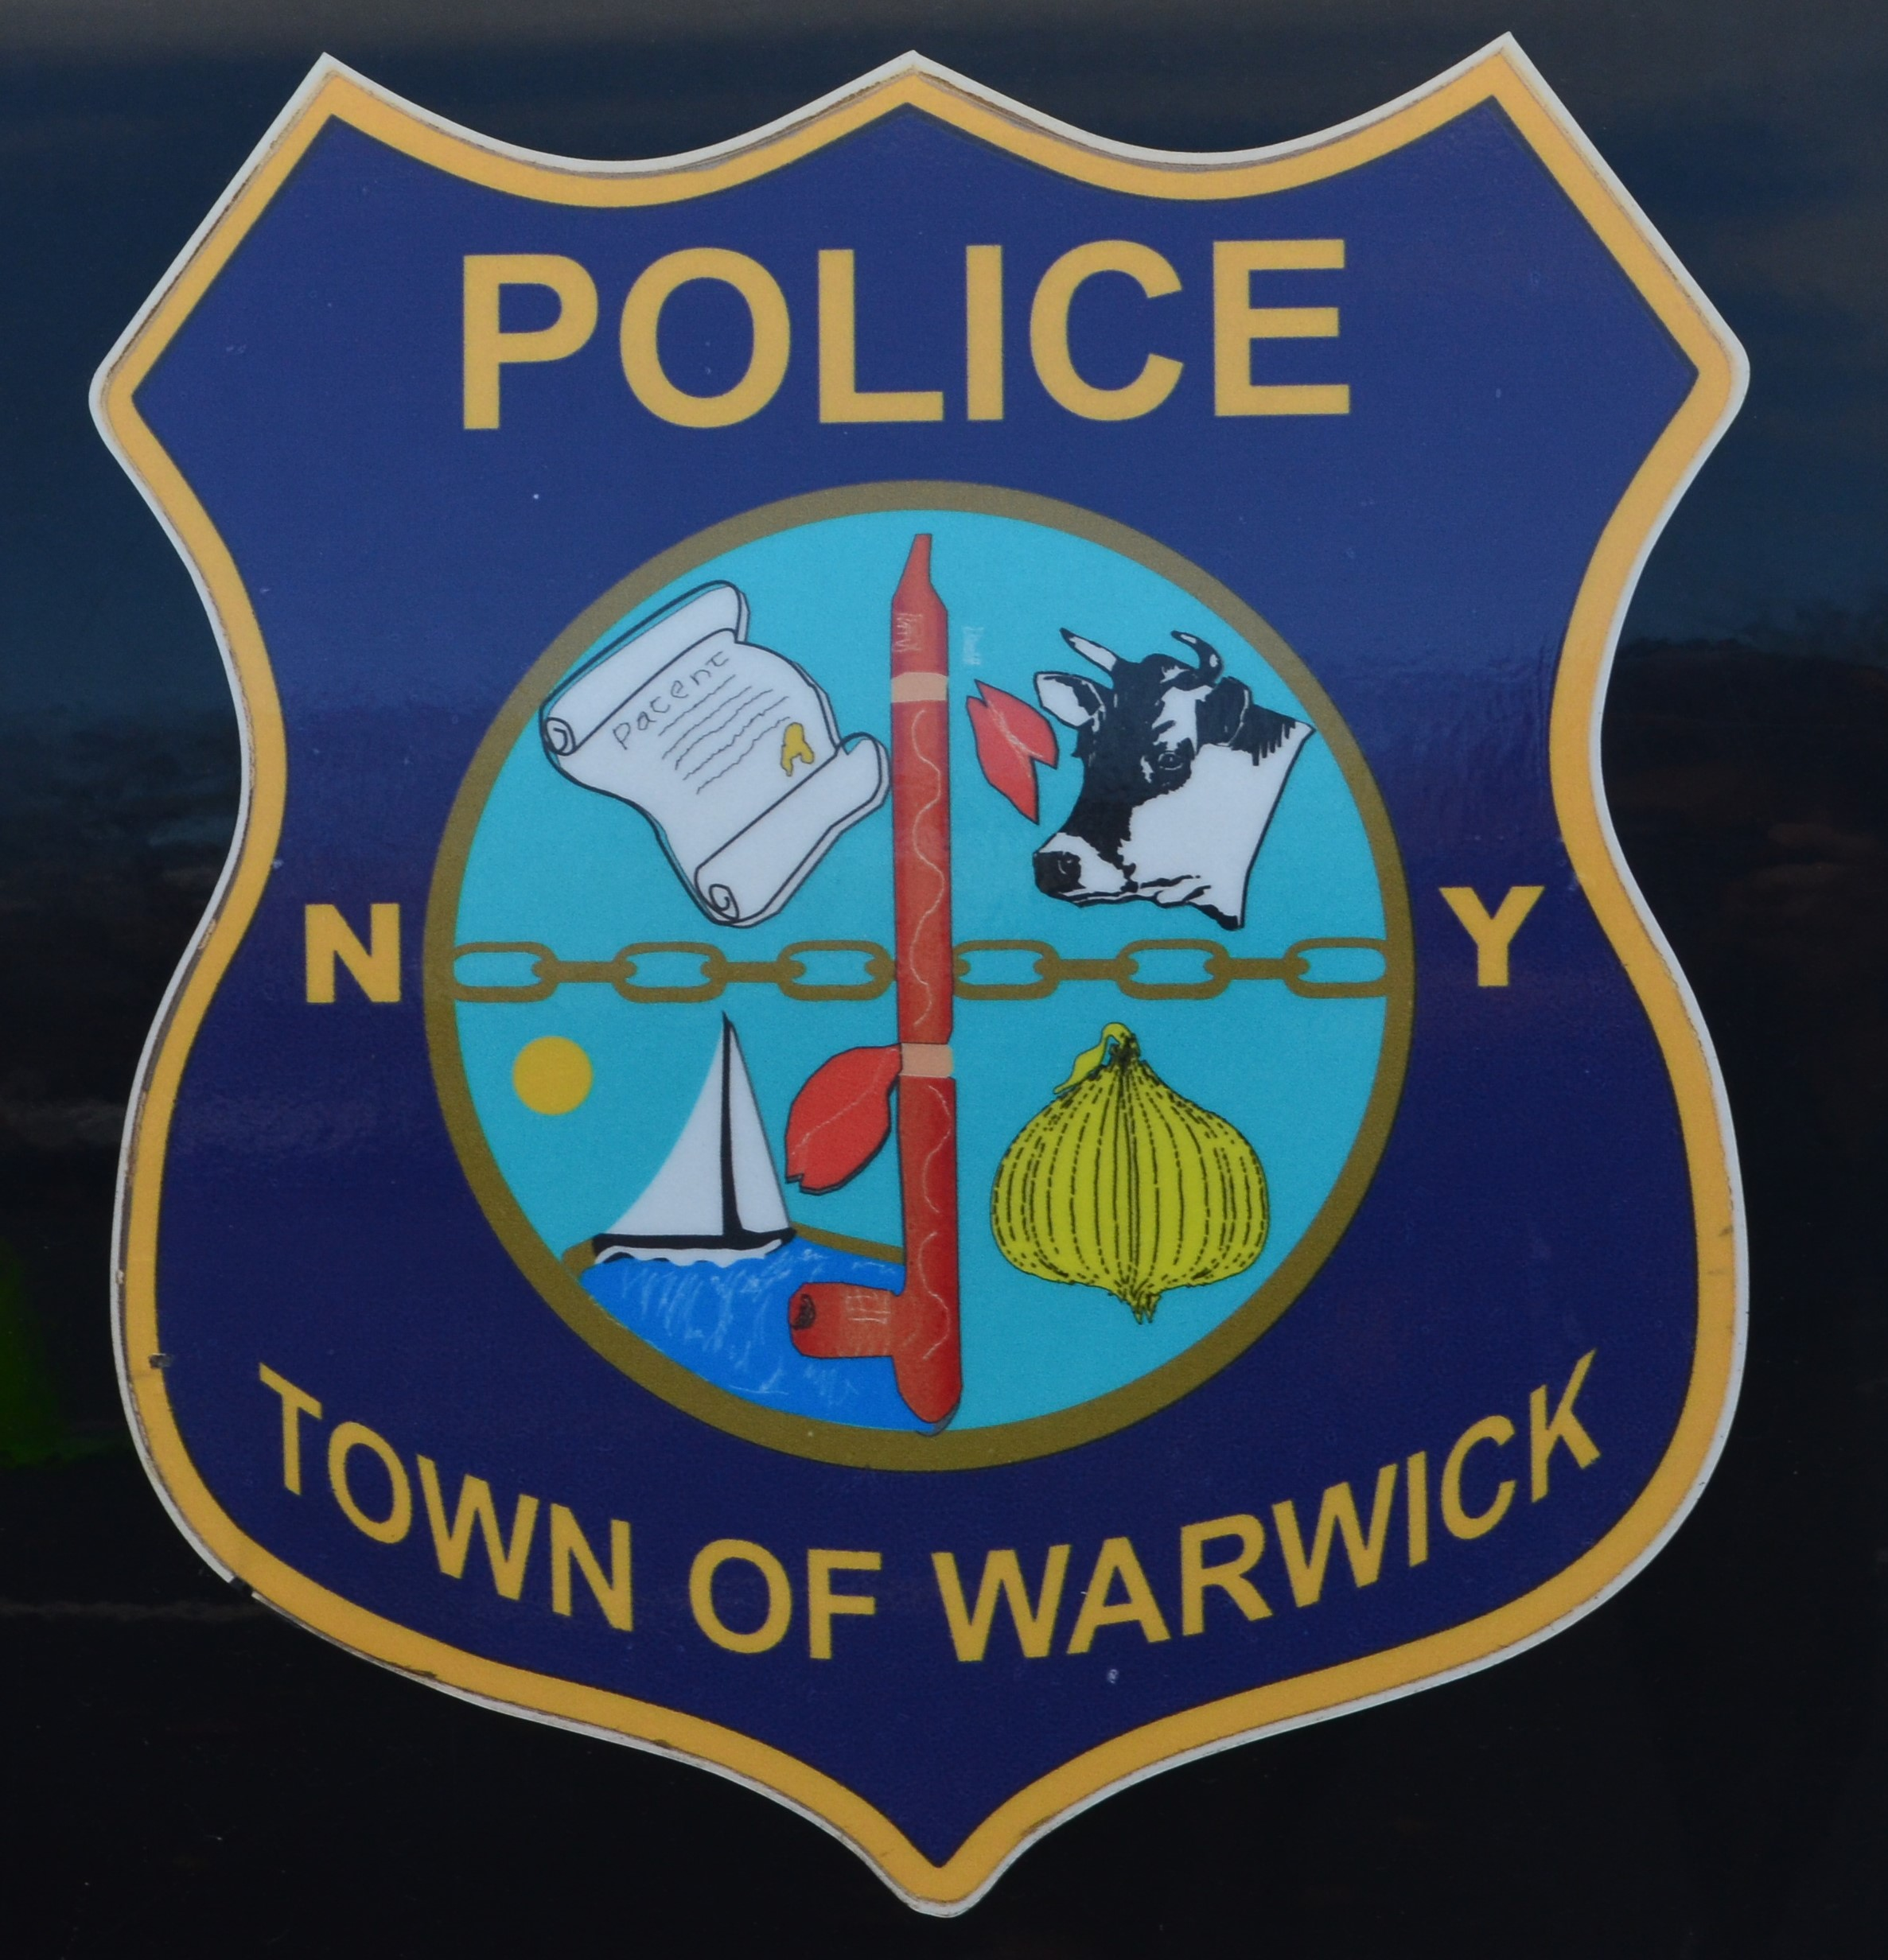 Warwick Police Department